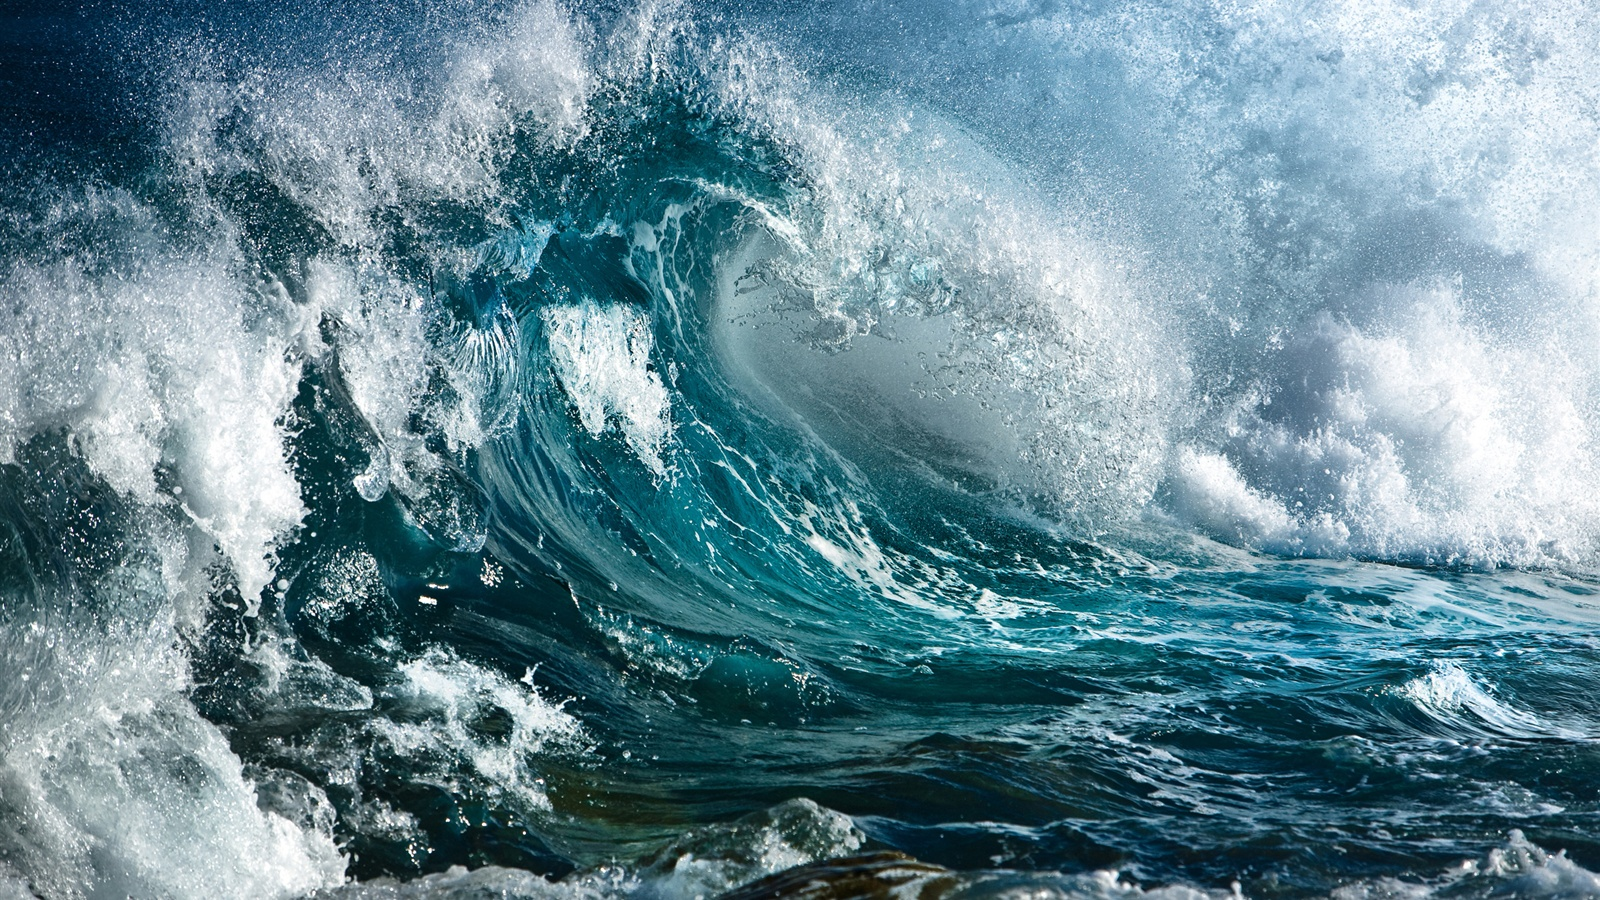 Cool Ocean Wave Backgrounds For  puters on 1202 html